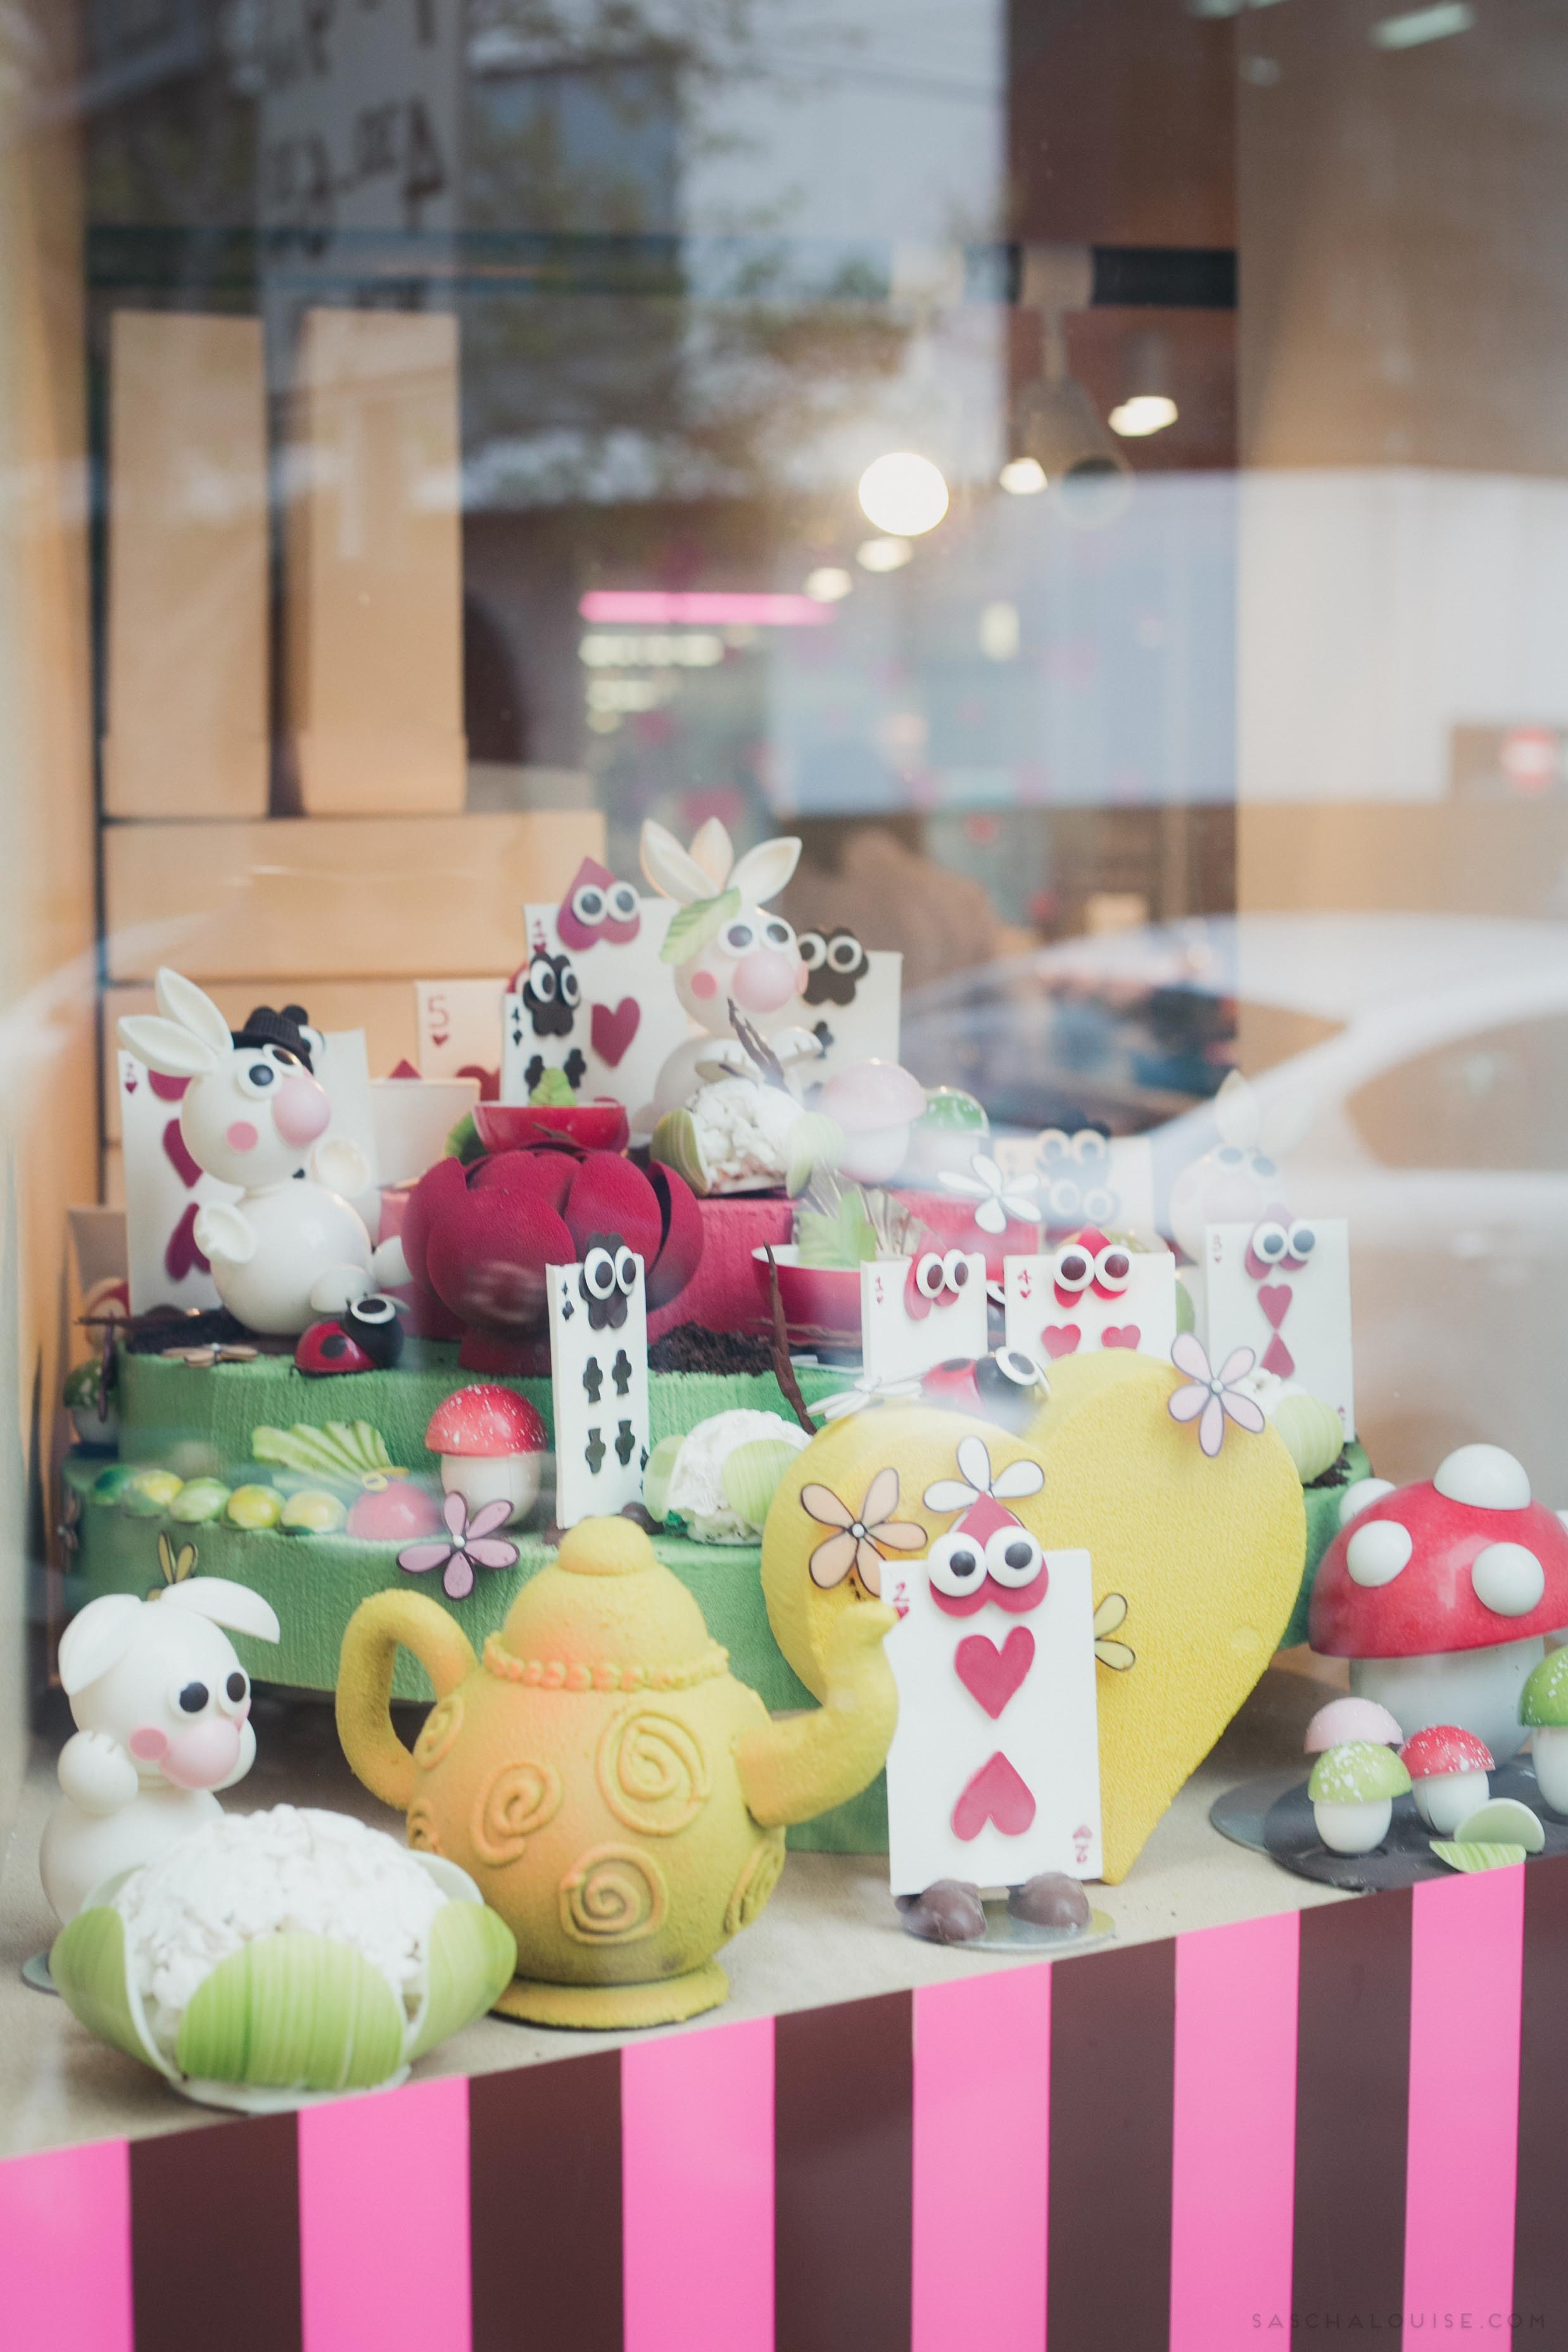 Alice in Wonderland window display, where everything is made from chocolate : Burch and Purchese